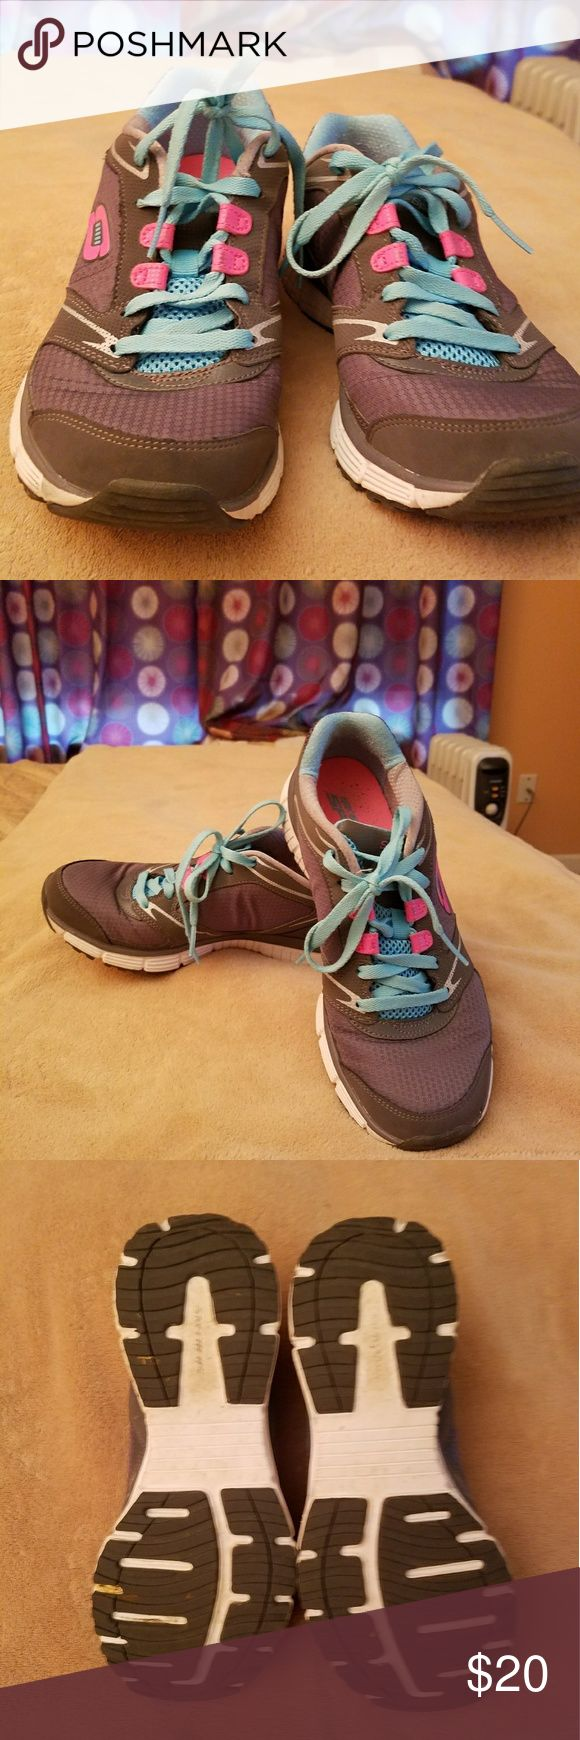 Sketchers ladies running shoes Sketchers, size 7, ladies running shoe. Gray, teal and pink. Extra laces included. Gently worn Skechers Shoes Athletic Shoes